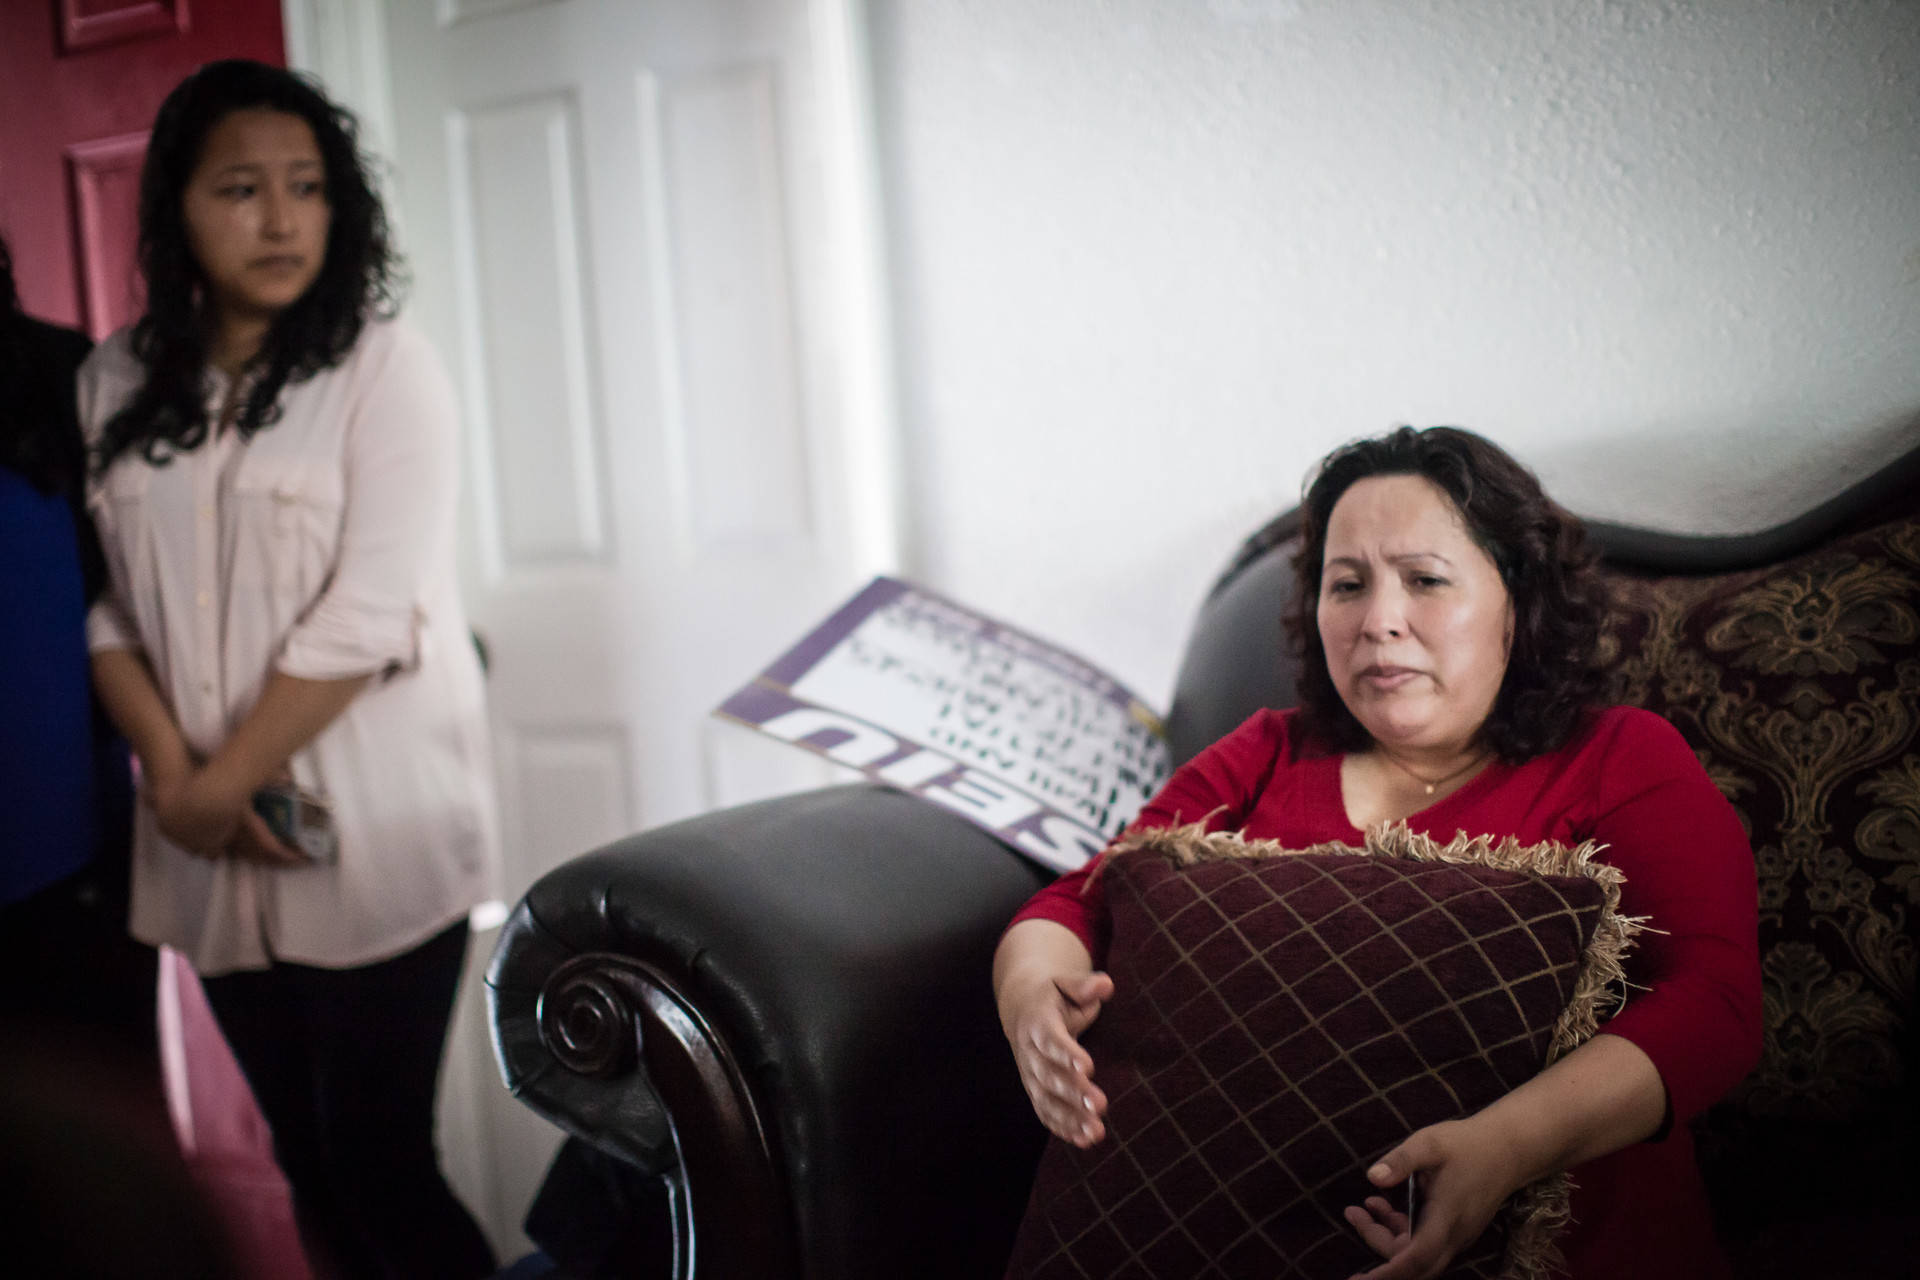 Maria Mendoza-Sanchez sits on a couch in her Oakland home on Aug. 16, 2017, hours before she, her husband and son leave Oakland for Mexico City. Her daughter, Melin Sanchez, 21, cries as she watches her mother with concern. Deborah Svoboda/KQED